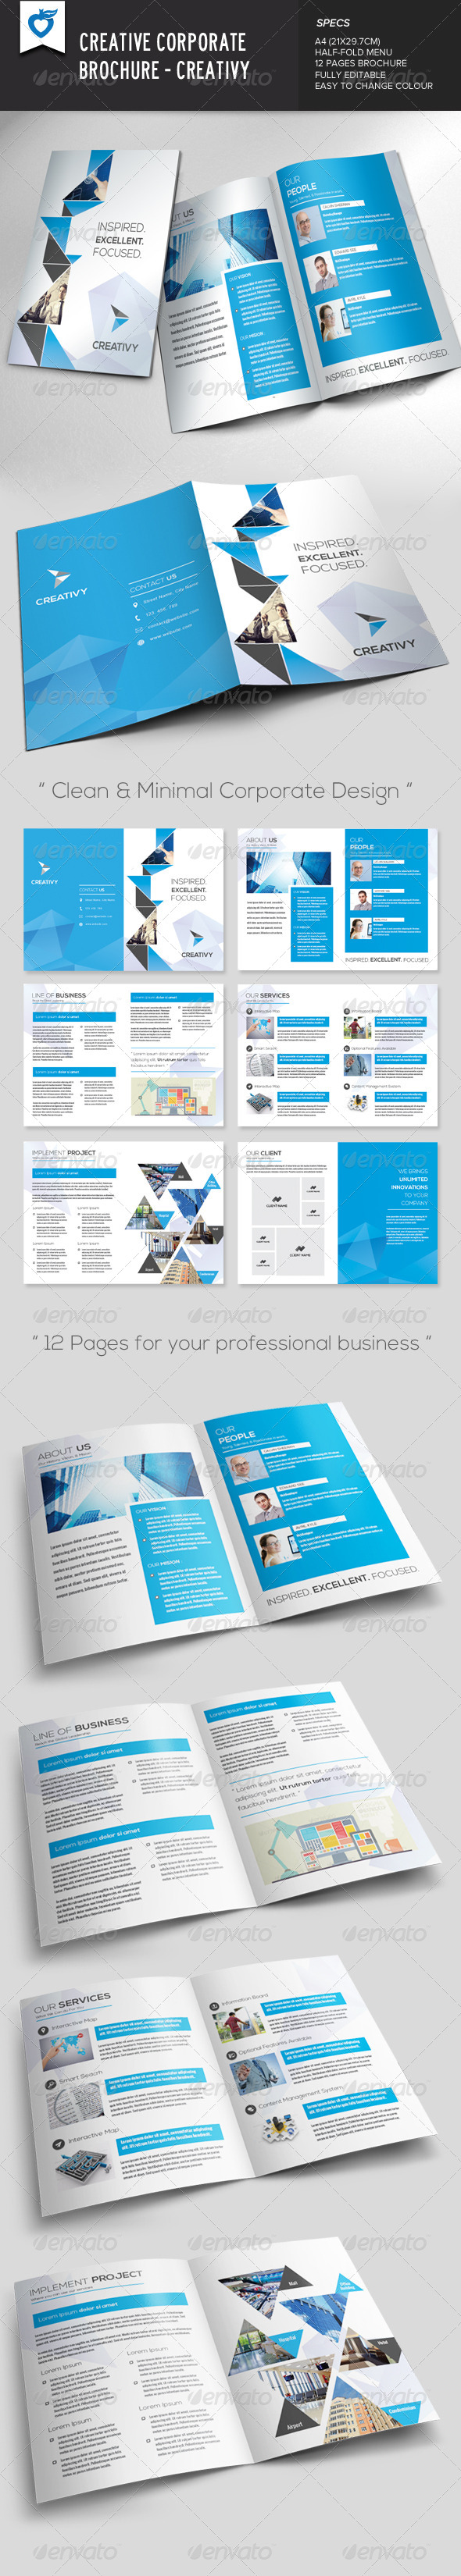 Creative Corporate Brochure - Creativy